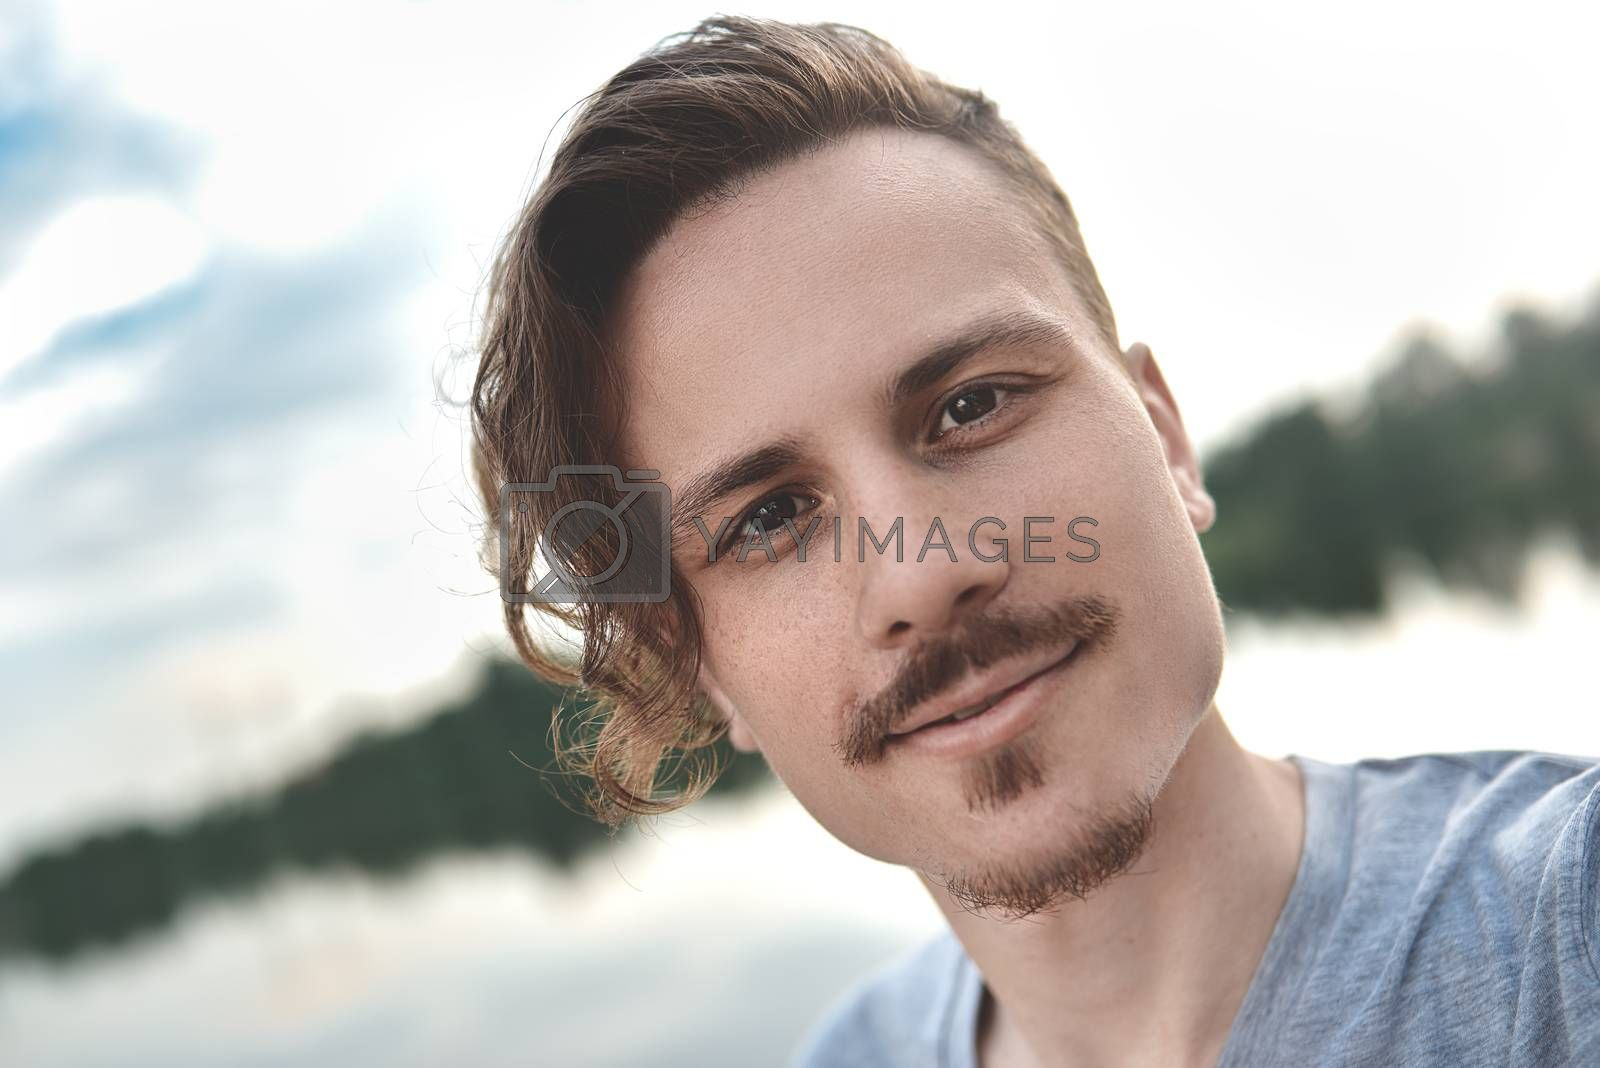 Handsome caucasian guy takes a selfie at the beach - people, lifestyle and technology concept